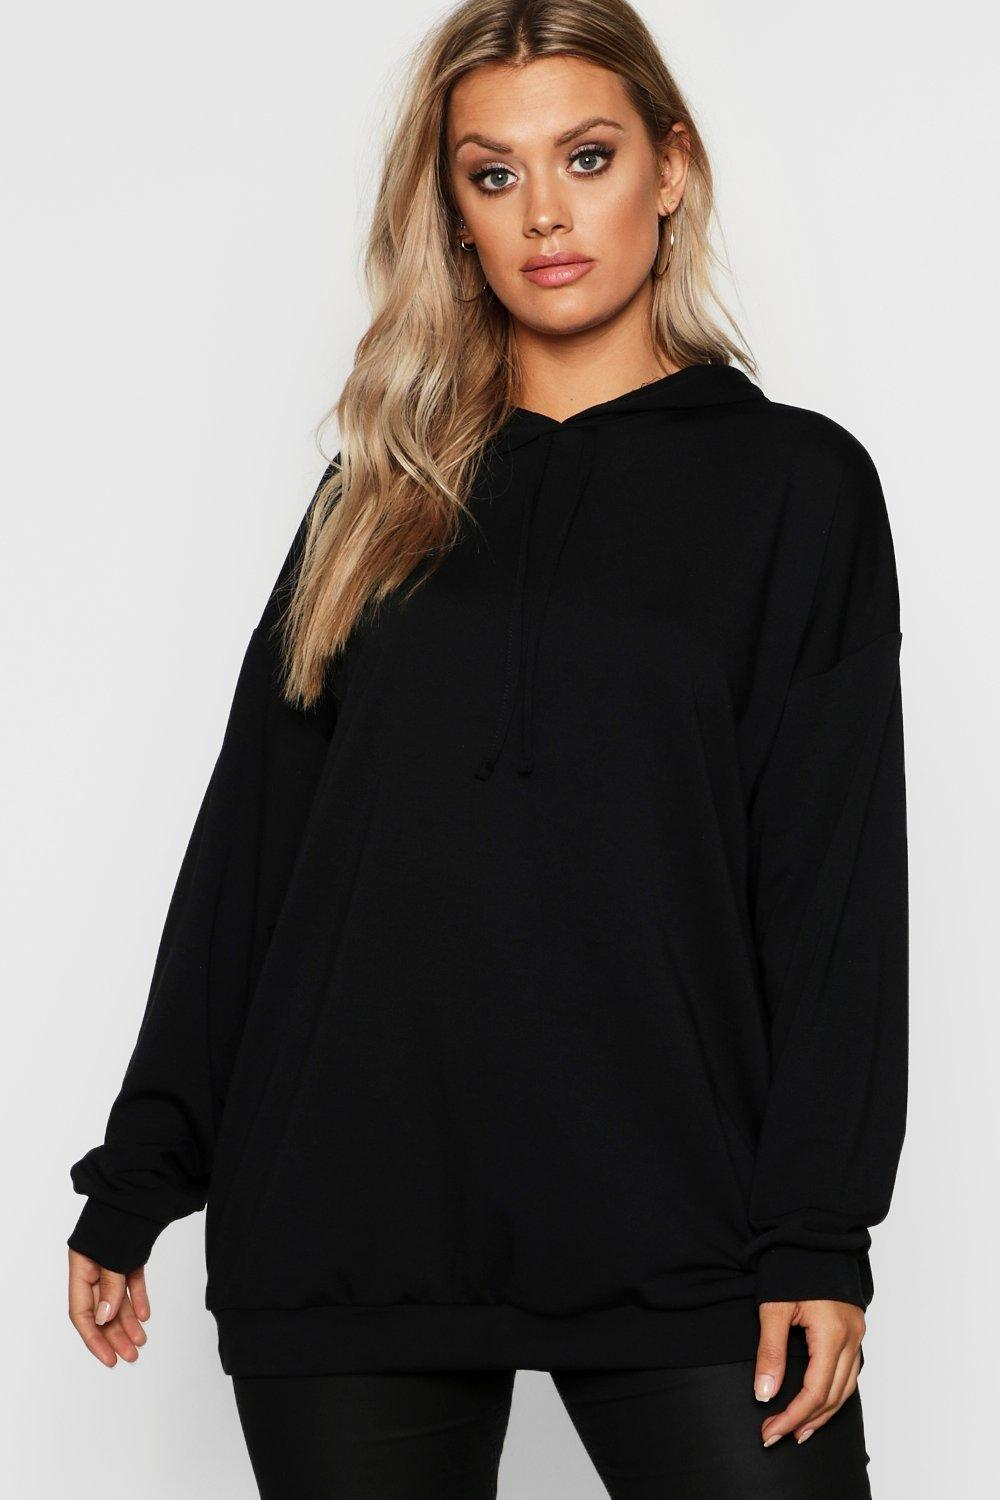 boohoo Womens Plus Oversized Hoody - Black - 24, Black